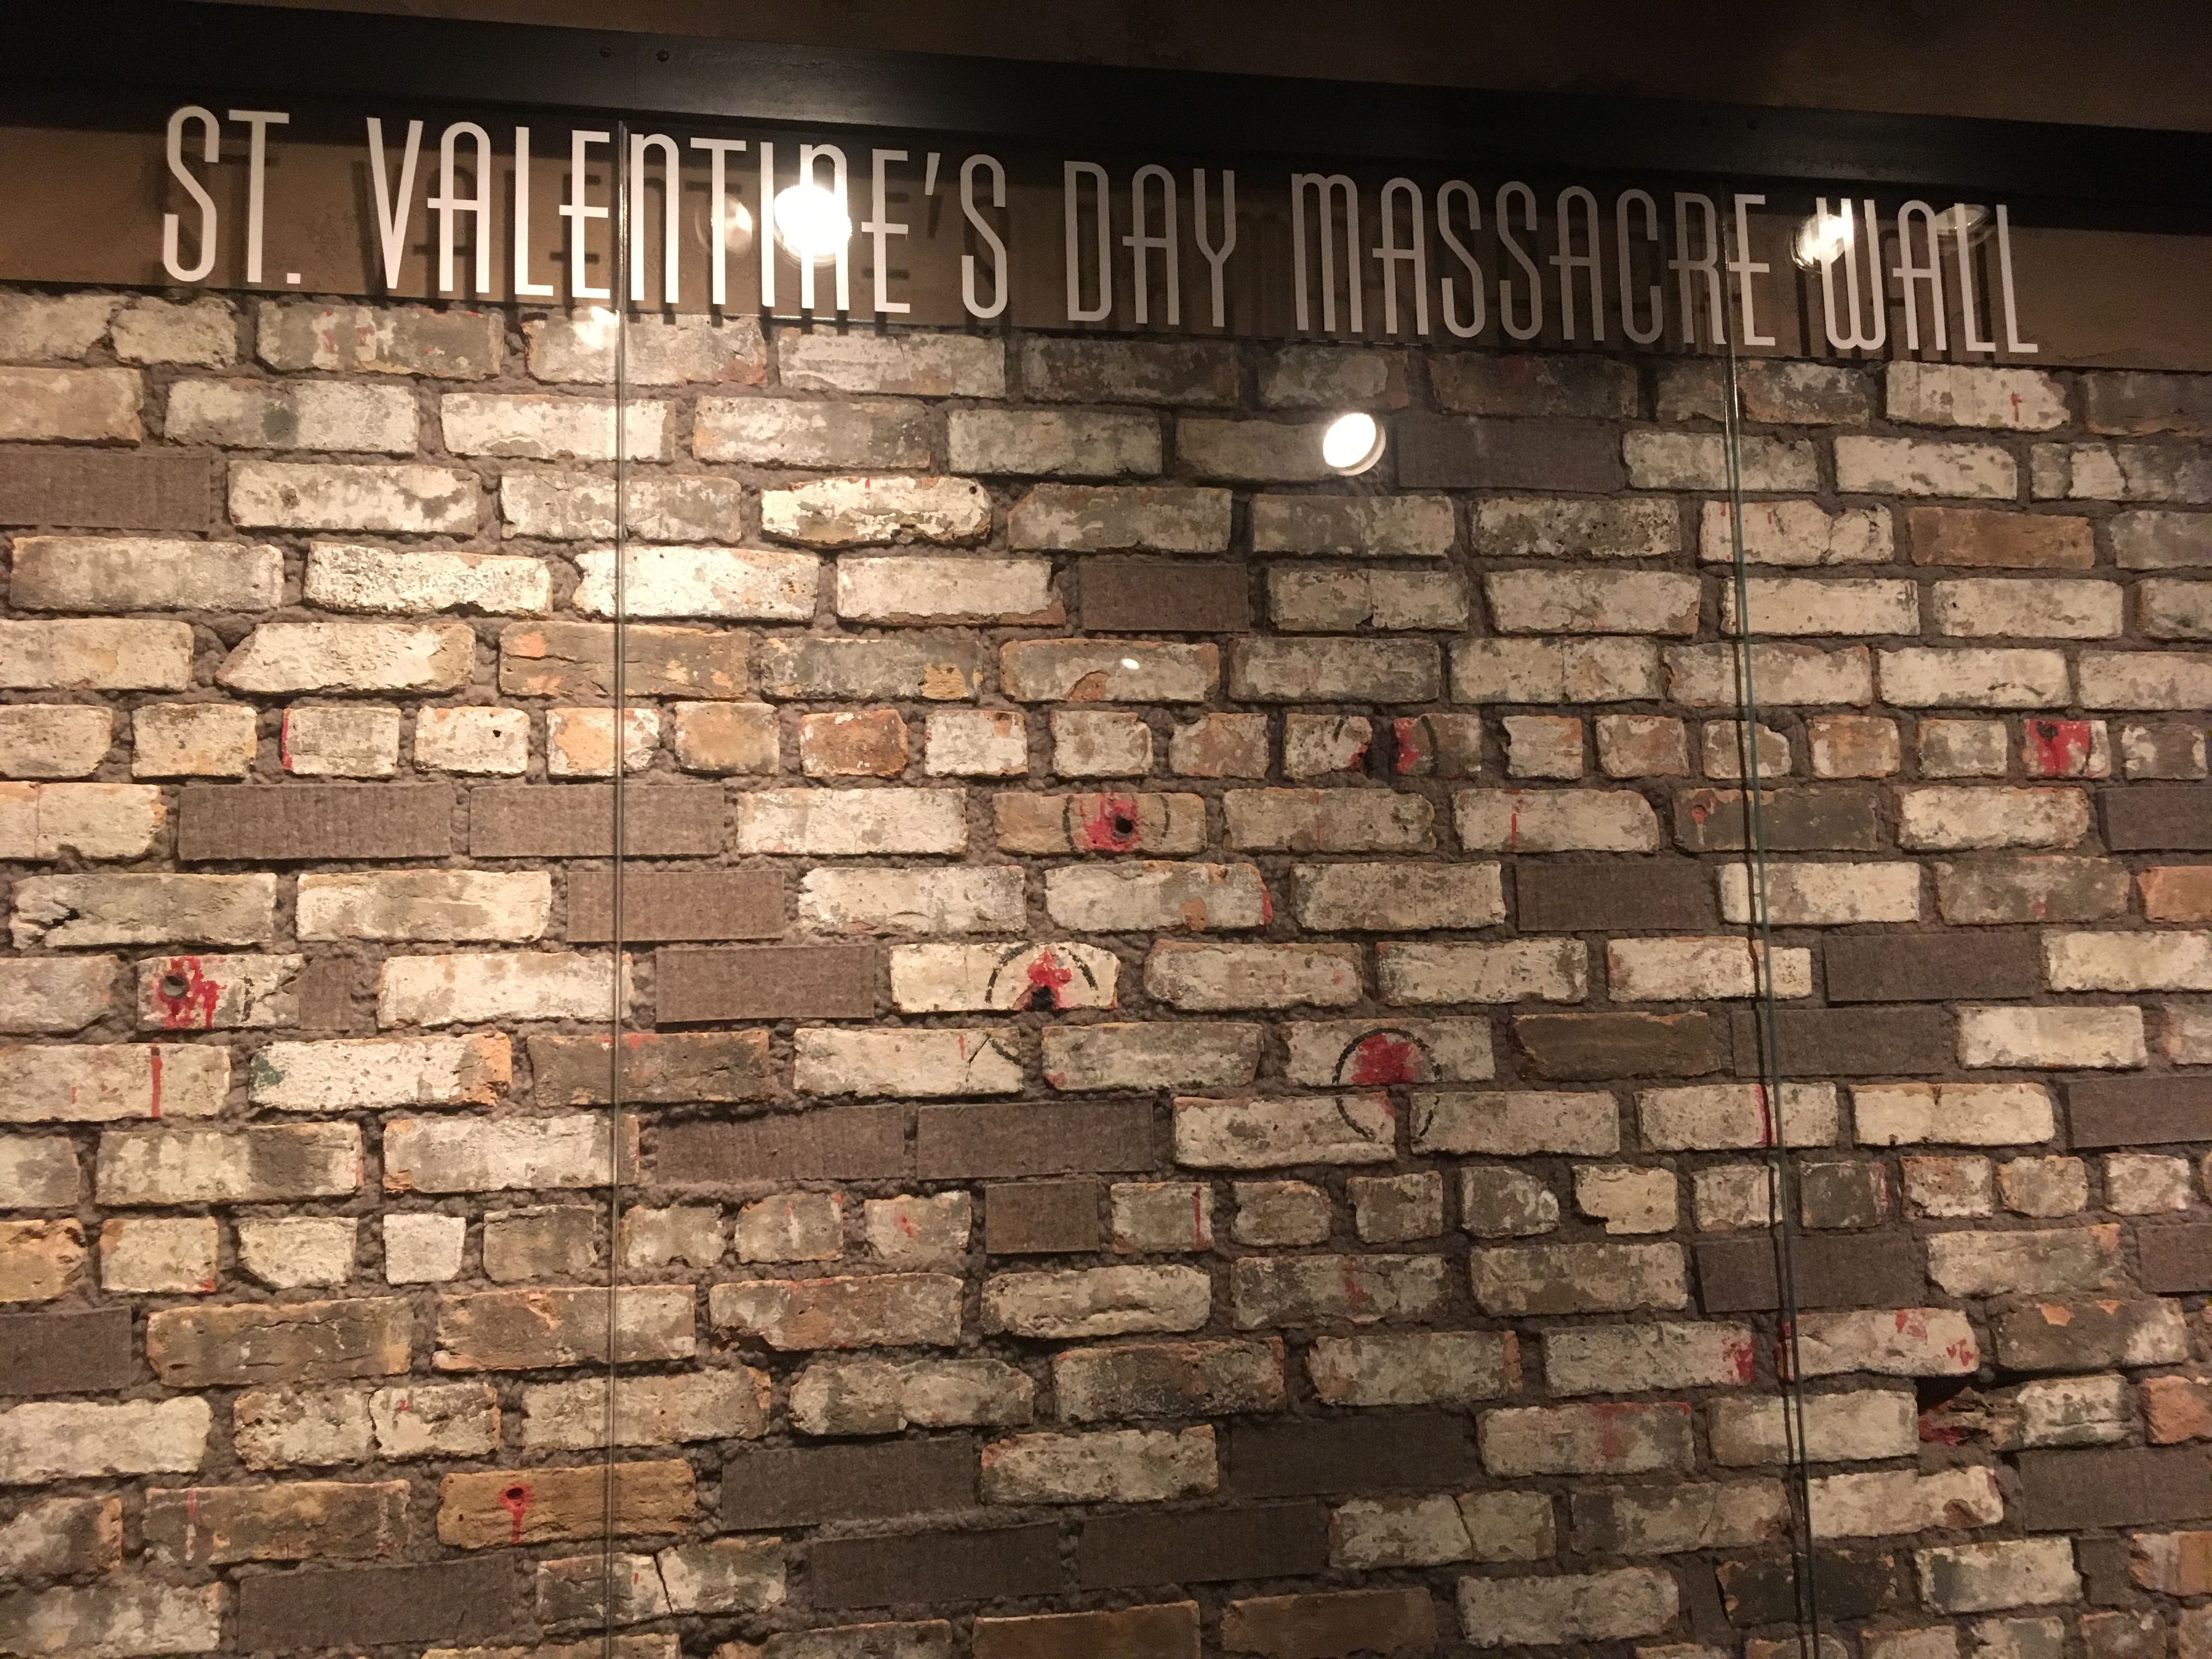 The Valentine S Day Massacre Wall Where Six Was Killed Now In The